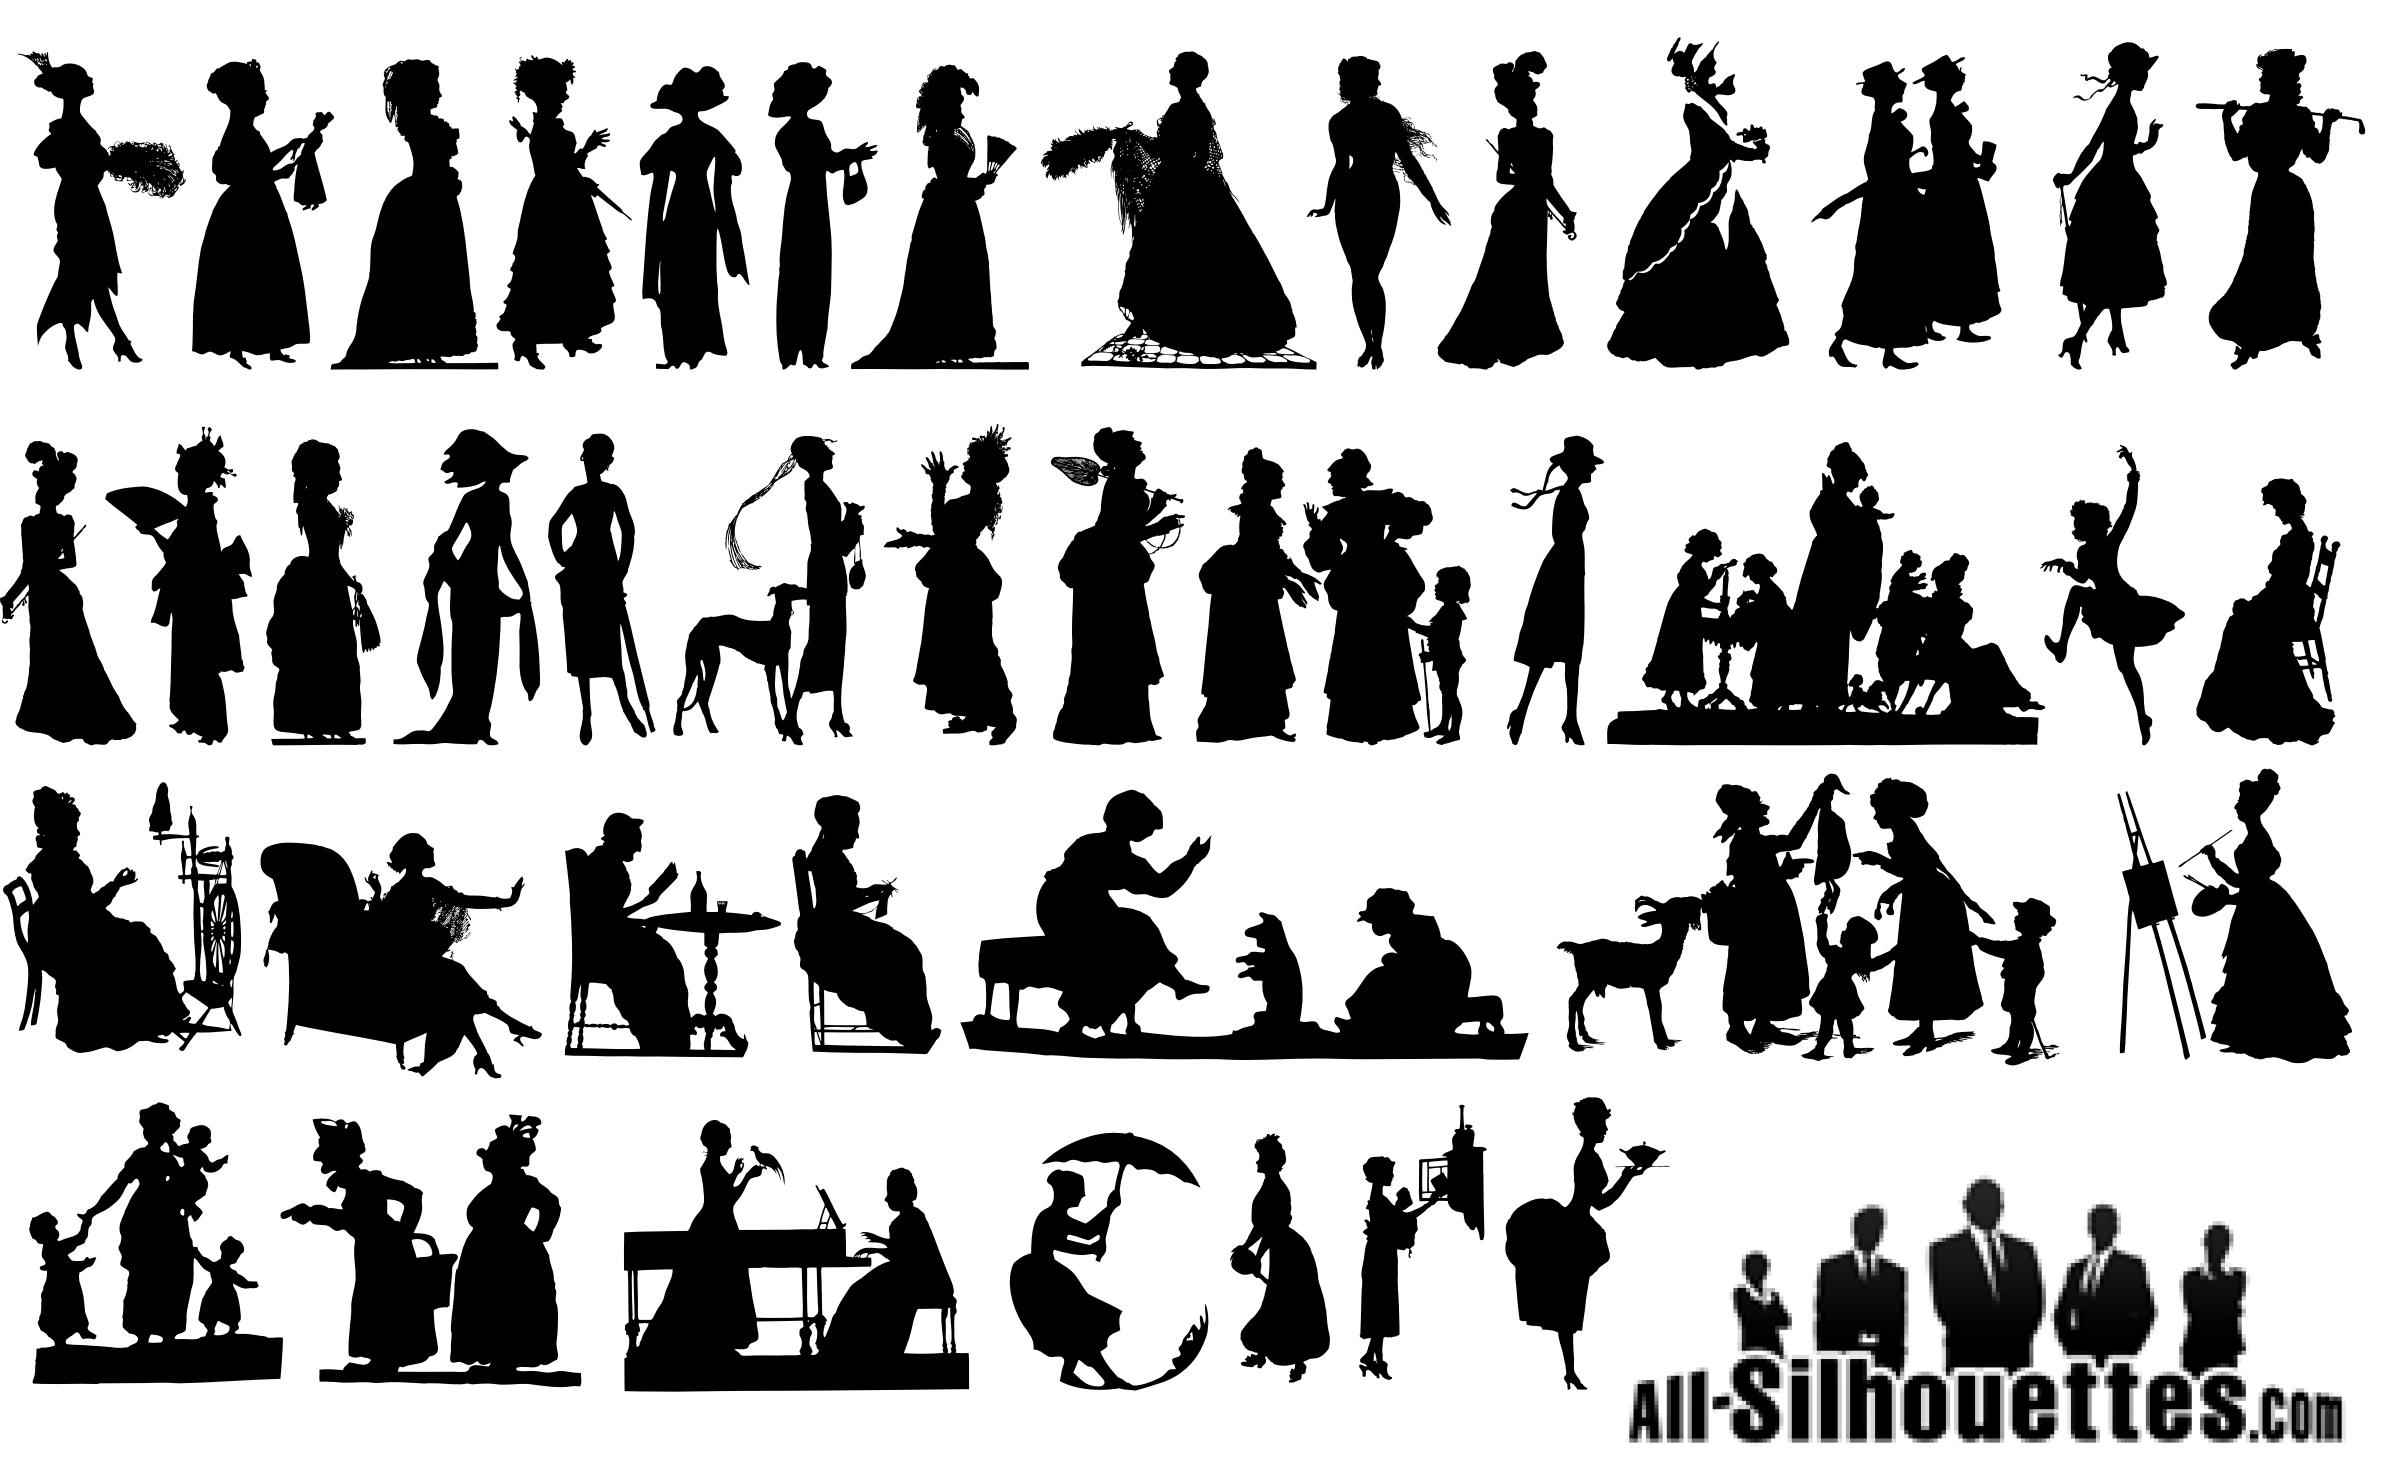 female-silhouettes_01